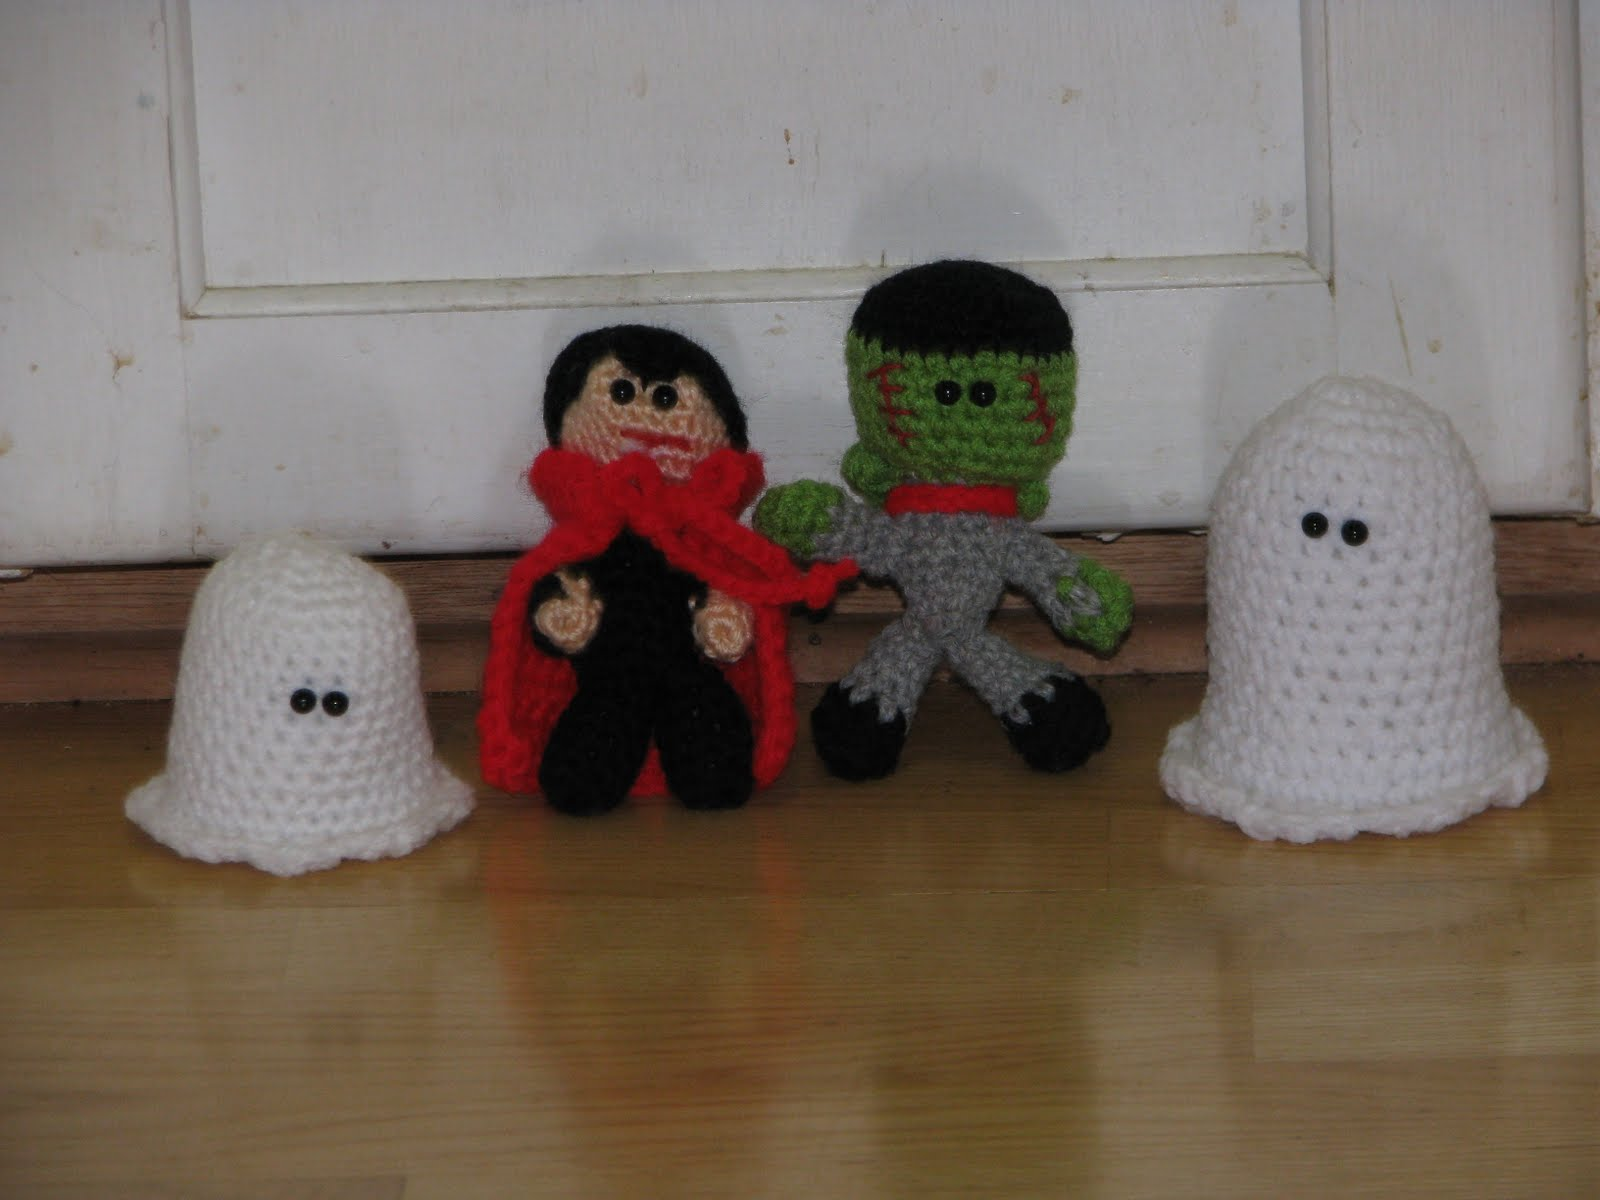 Craft Attic Resources: My Halloween Decorations - My Halloween Decorations